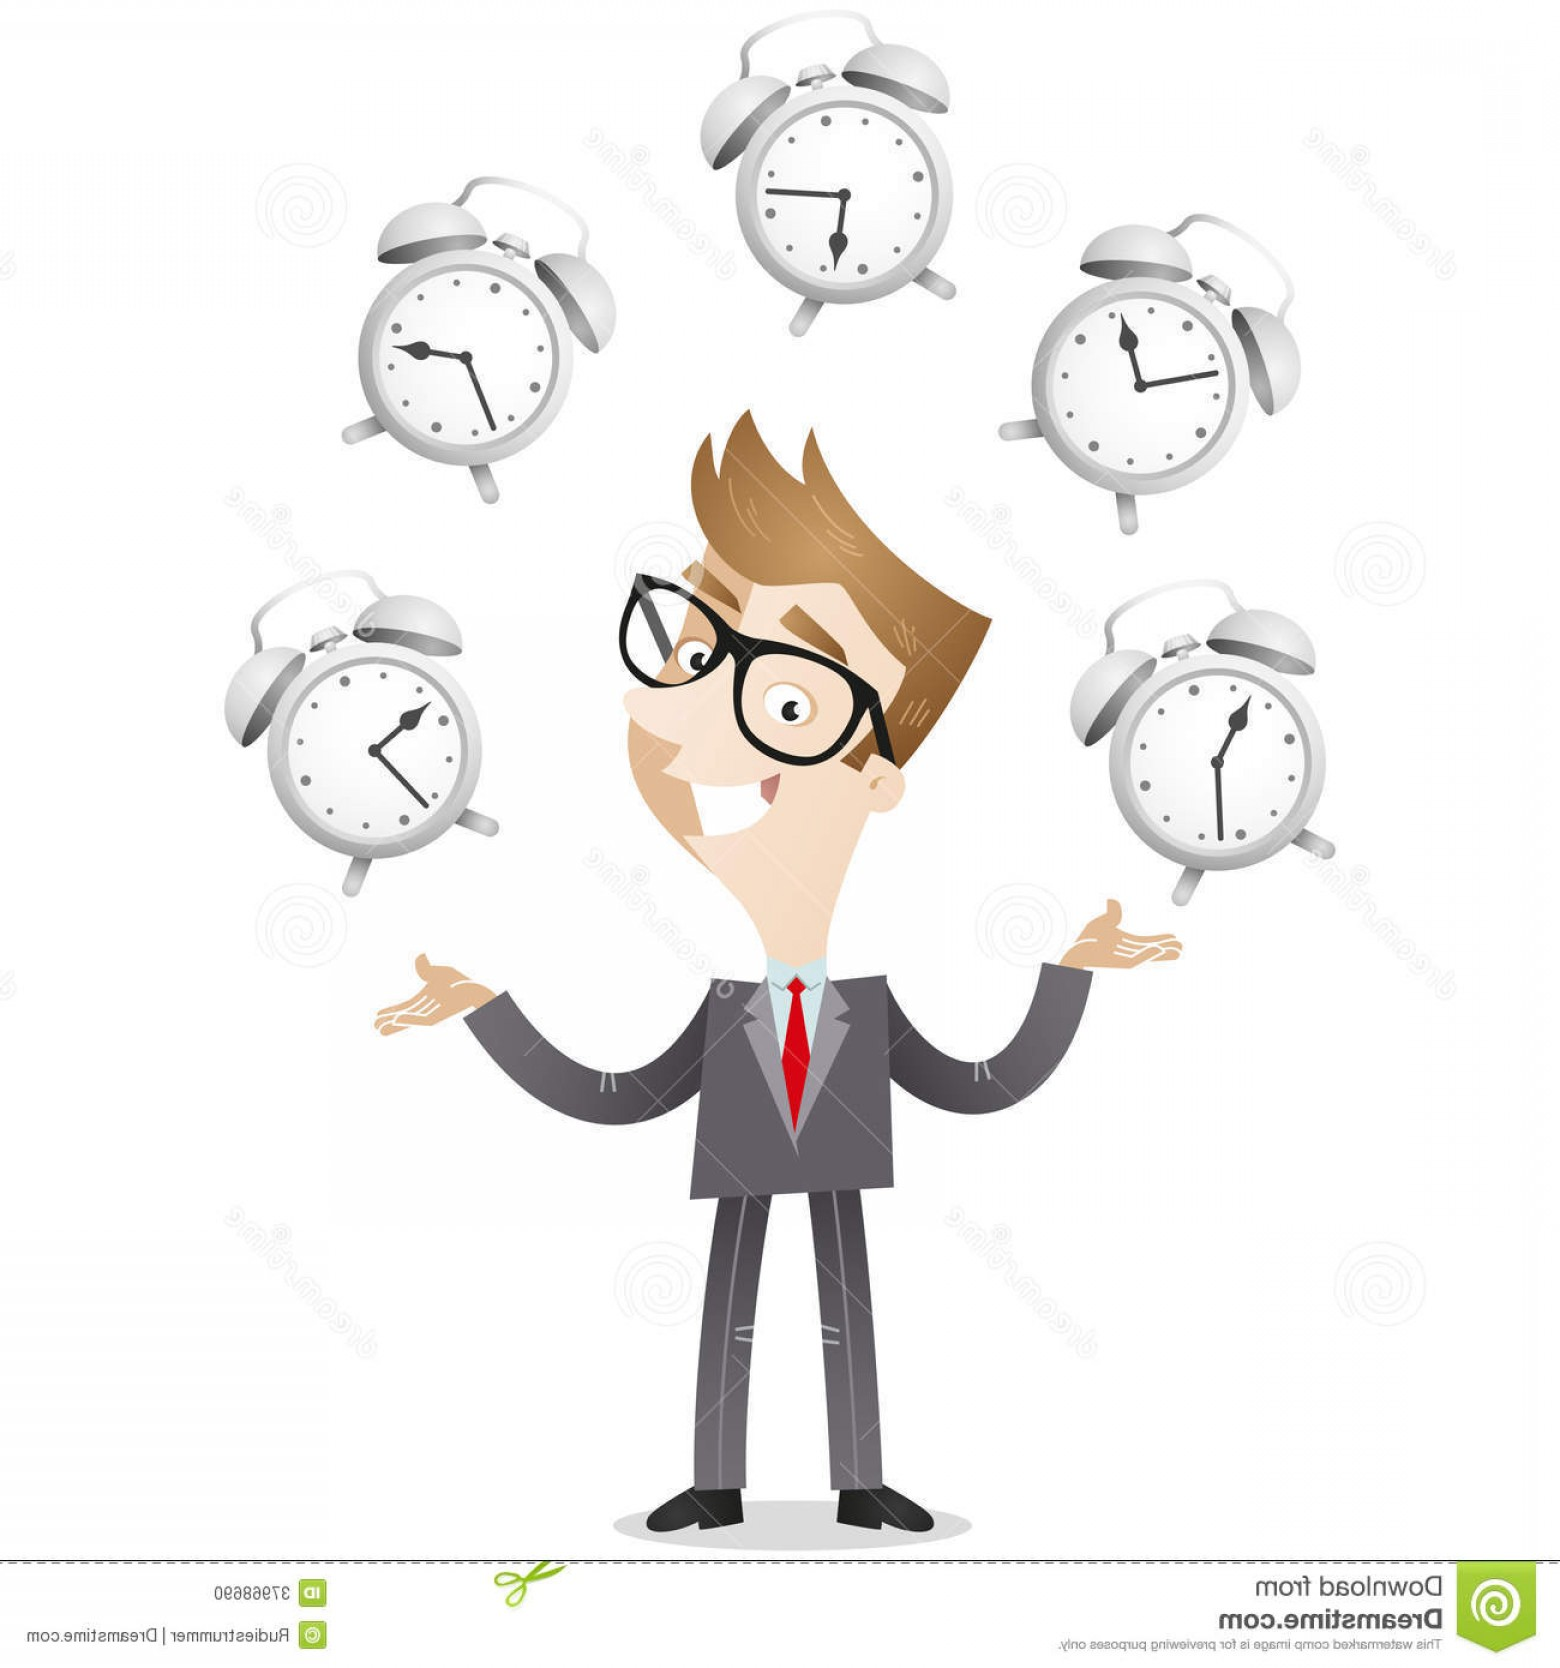 Nurse Juggling Vector: Stock Photo Businessman Juggling Alarm Clocks Vector Illustration Smiling Cartoon Symbolizing Time Management Image